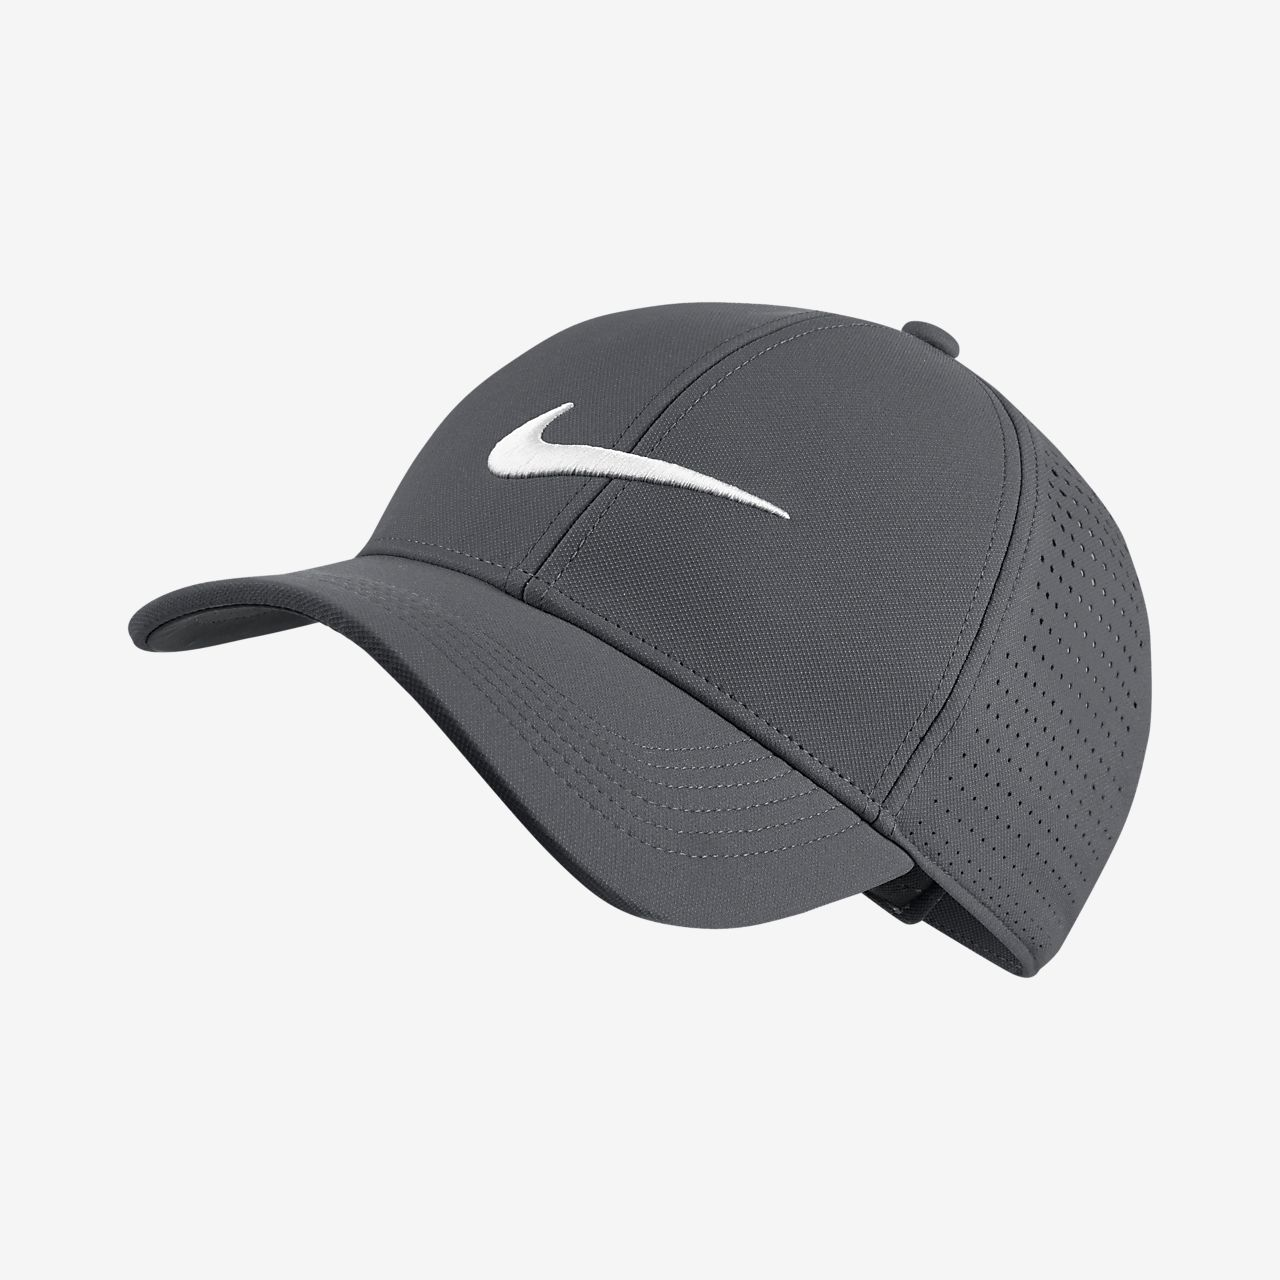 51d7aad1af1 Nike Legacy 91 Perforated Adjustable Golf Hat. Nike.com